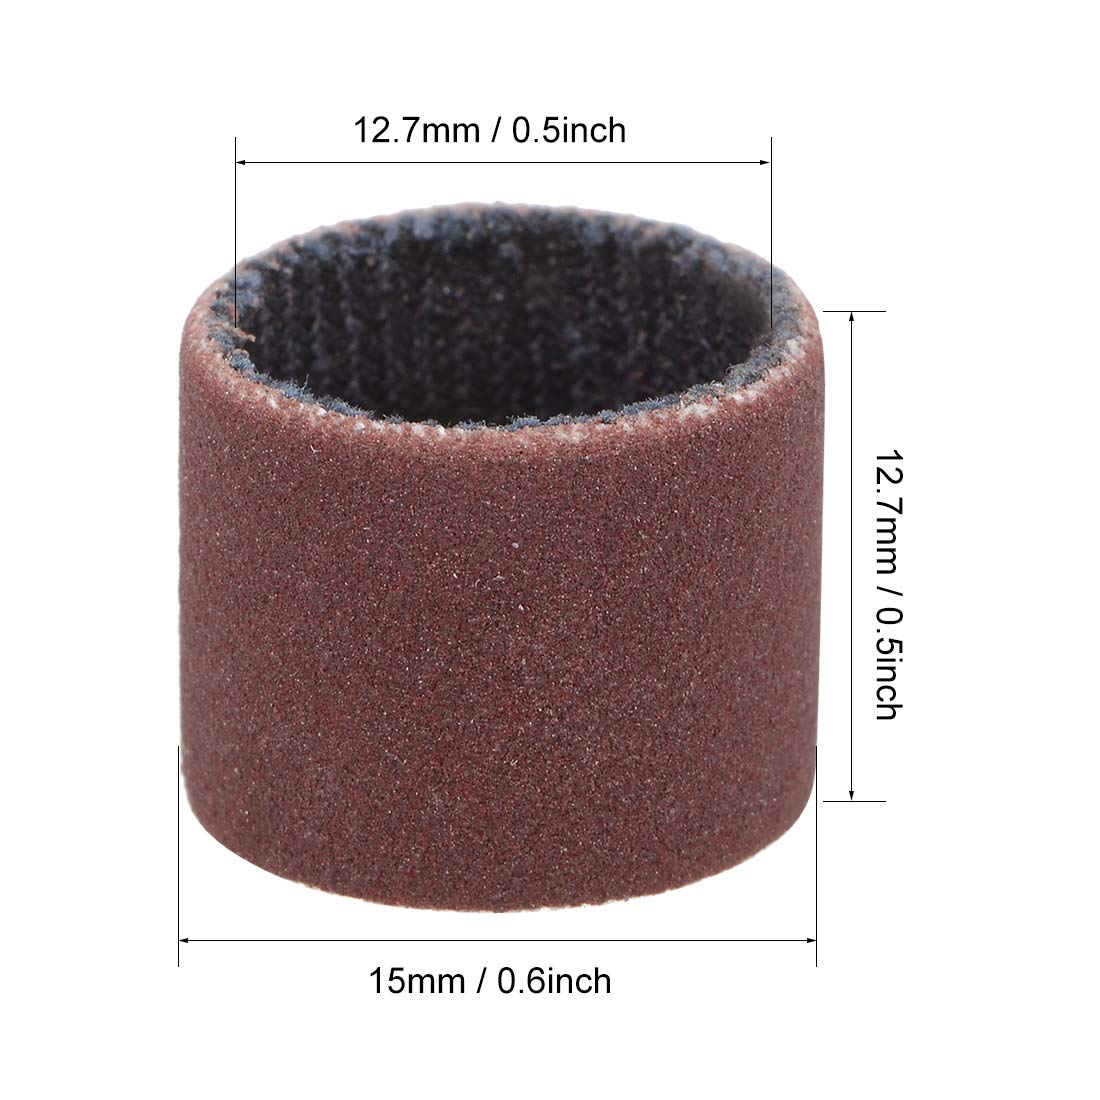 uxcell 1//2 inch x 1//2 inch Sanding Sleeves 400 Grits Sandpapers Band Drums 10 Pcs